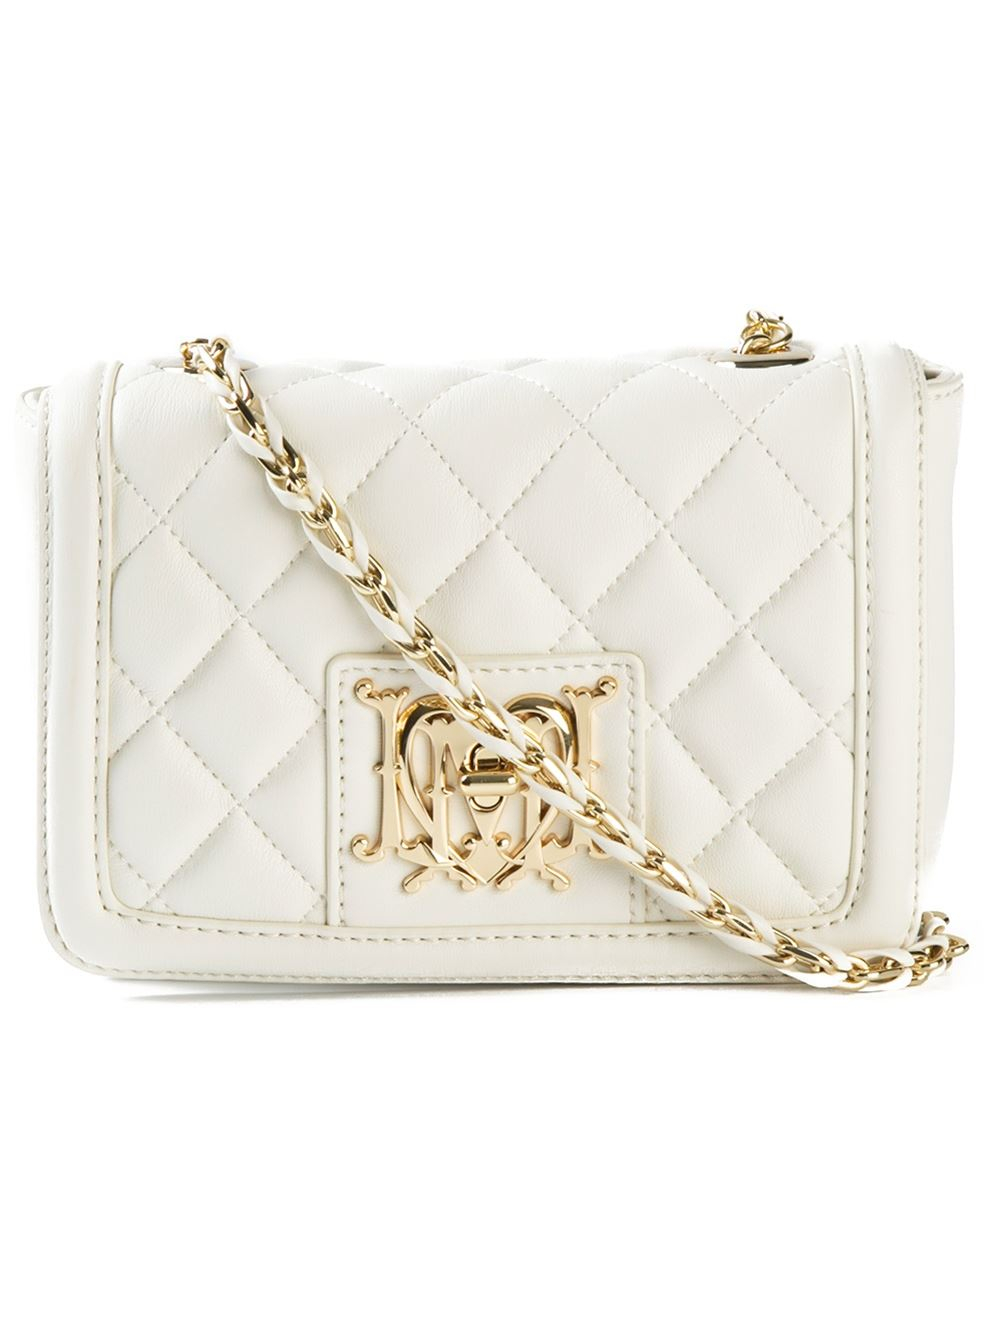 5b753bf88df Love Moschino Quilted-Leather Cross-Body Bag in White - Lyst